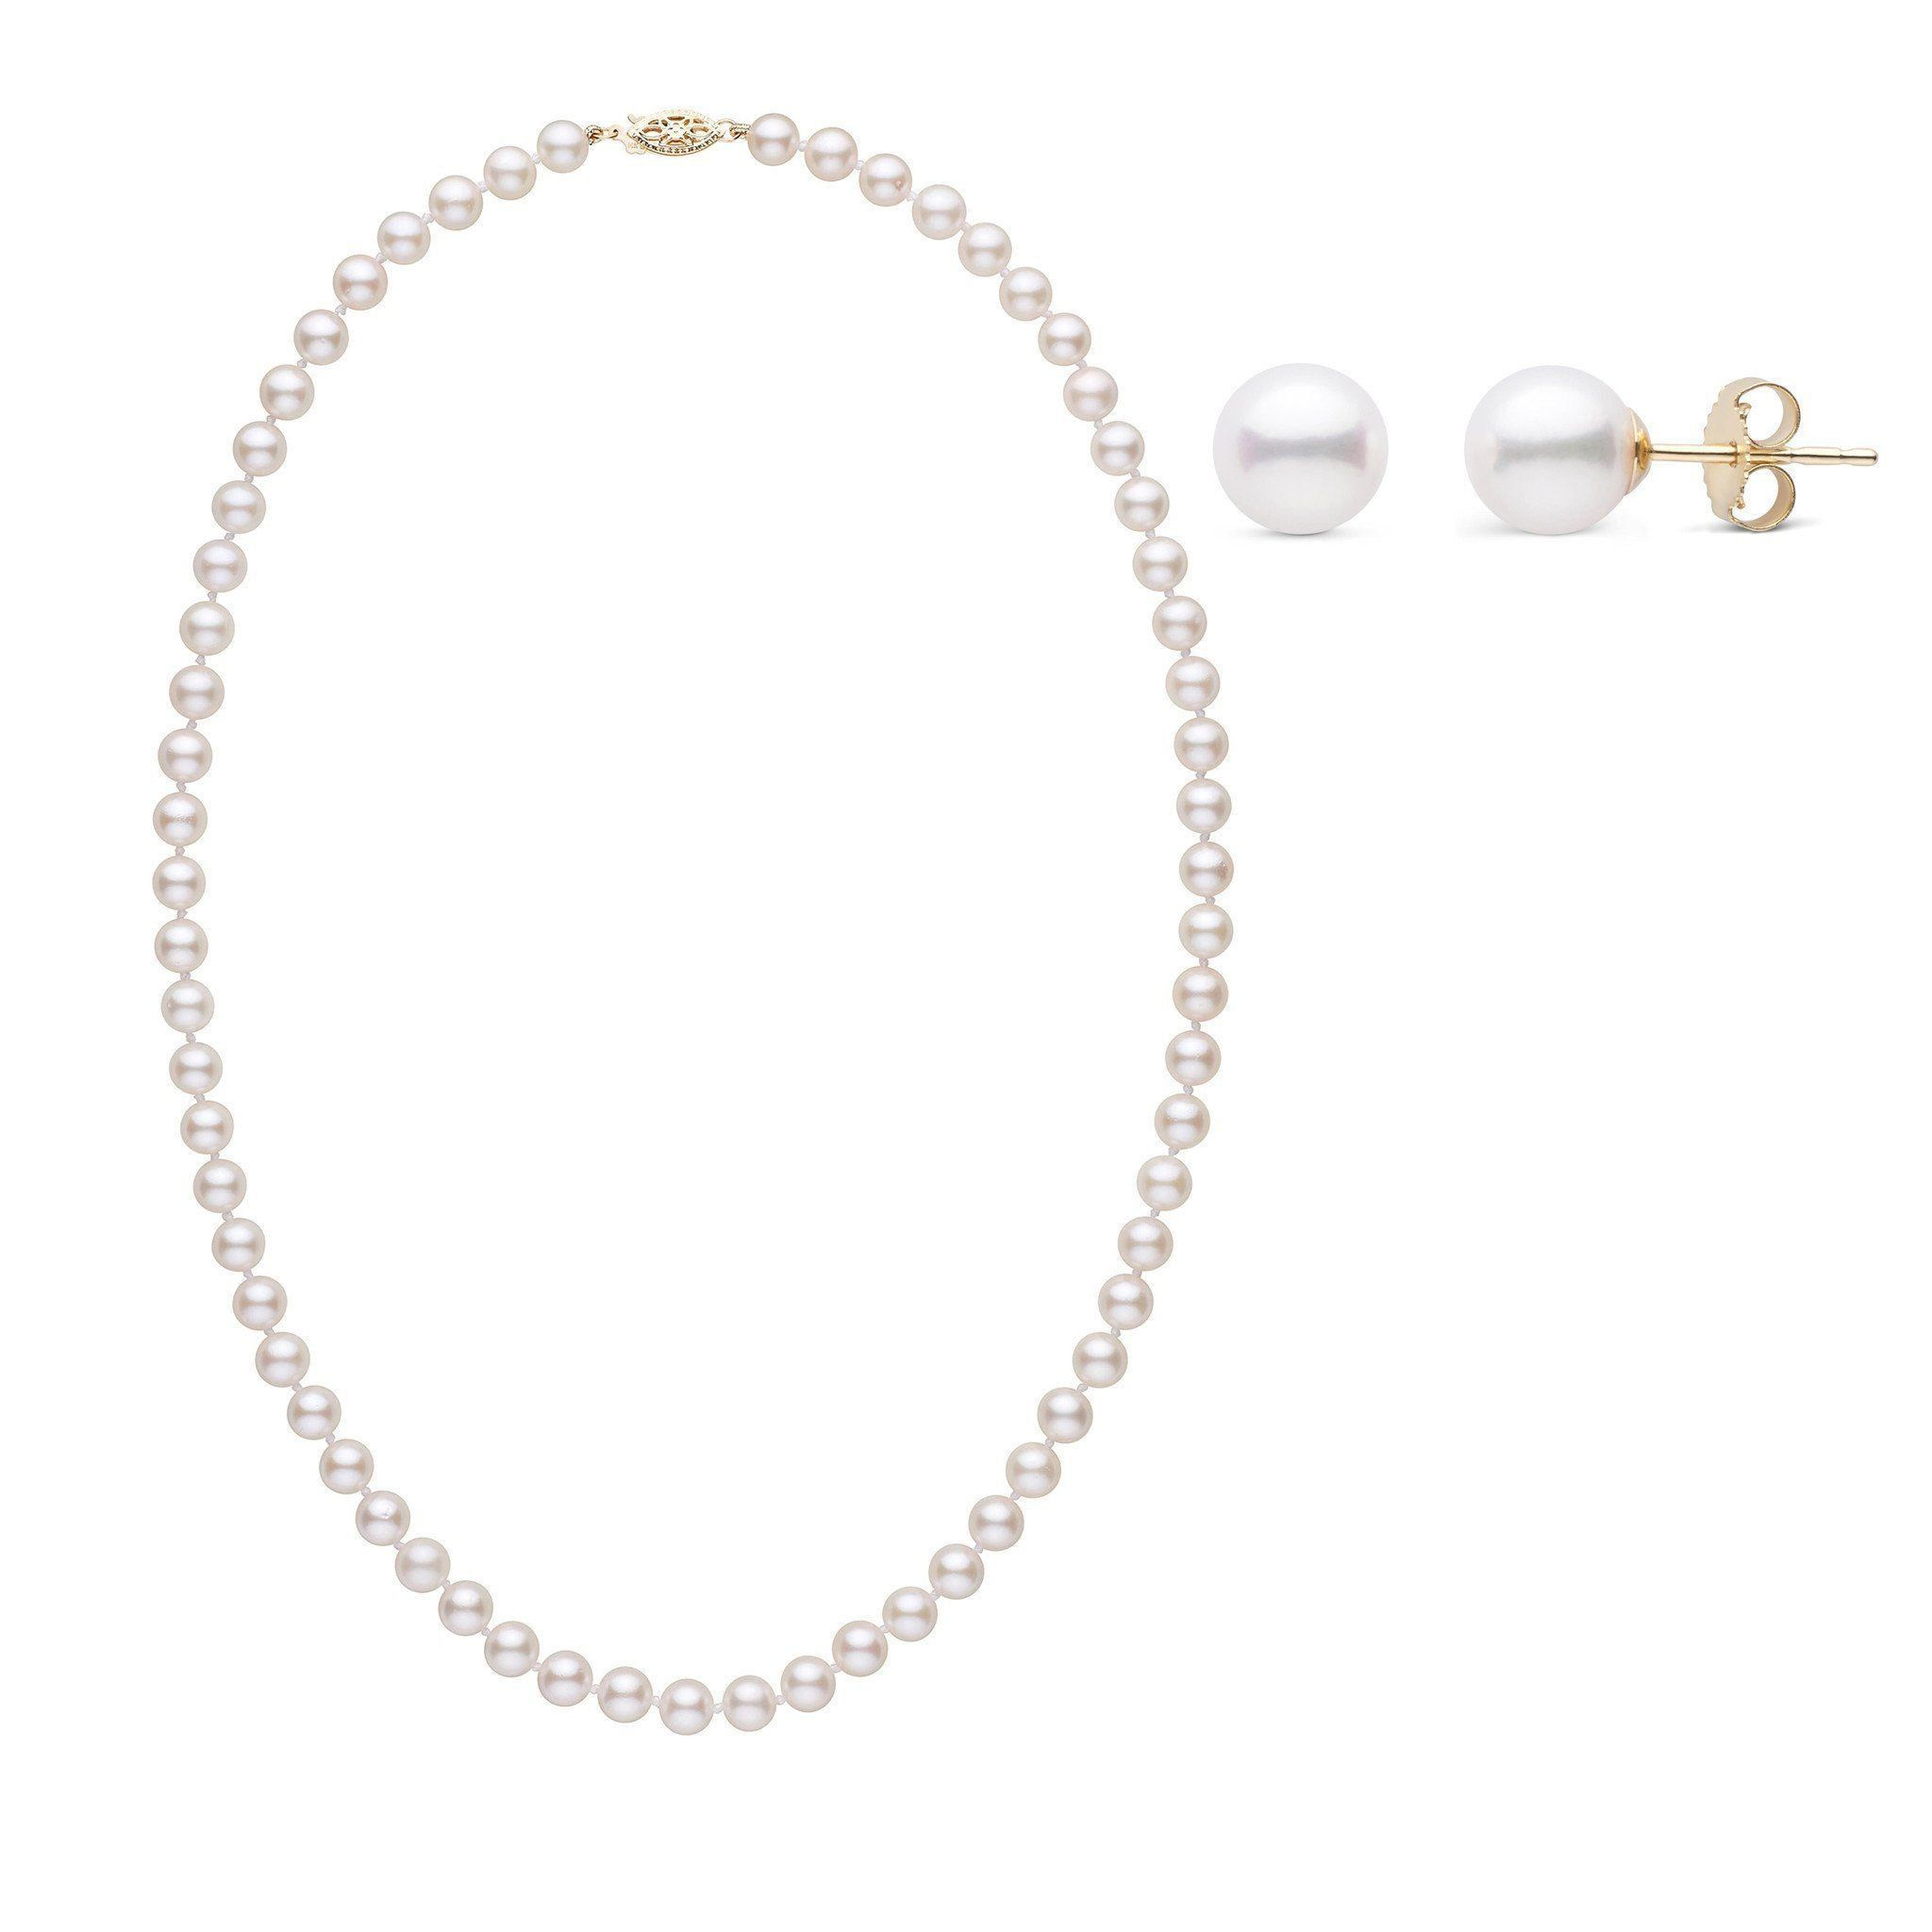 18 Inch 2 Piece Set of 6.0-6.5 mm AA+ White Akoya Pearls